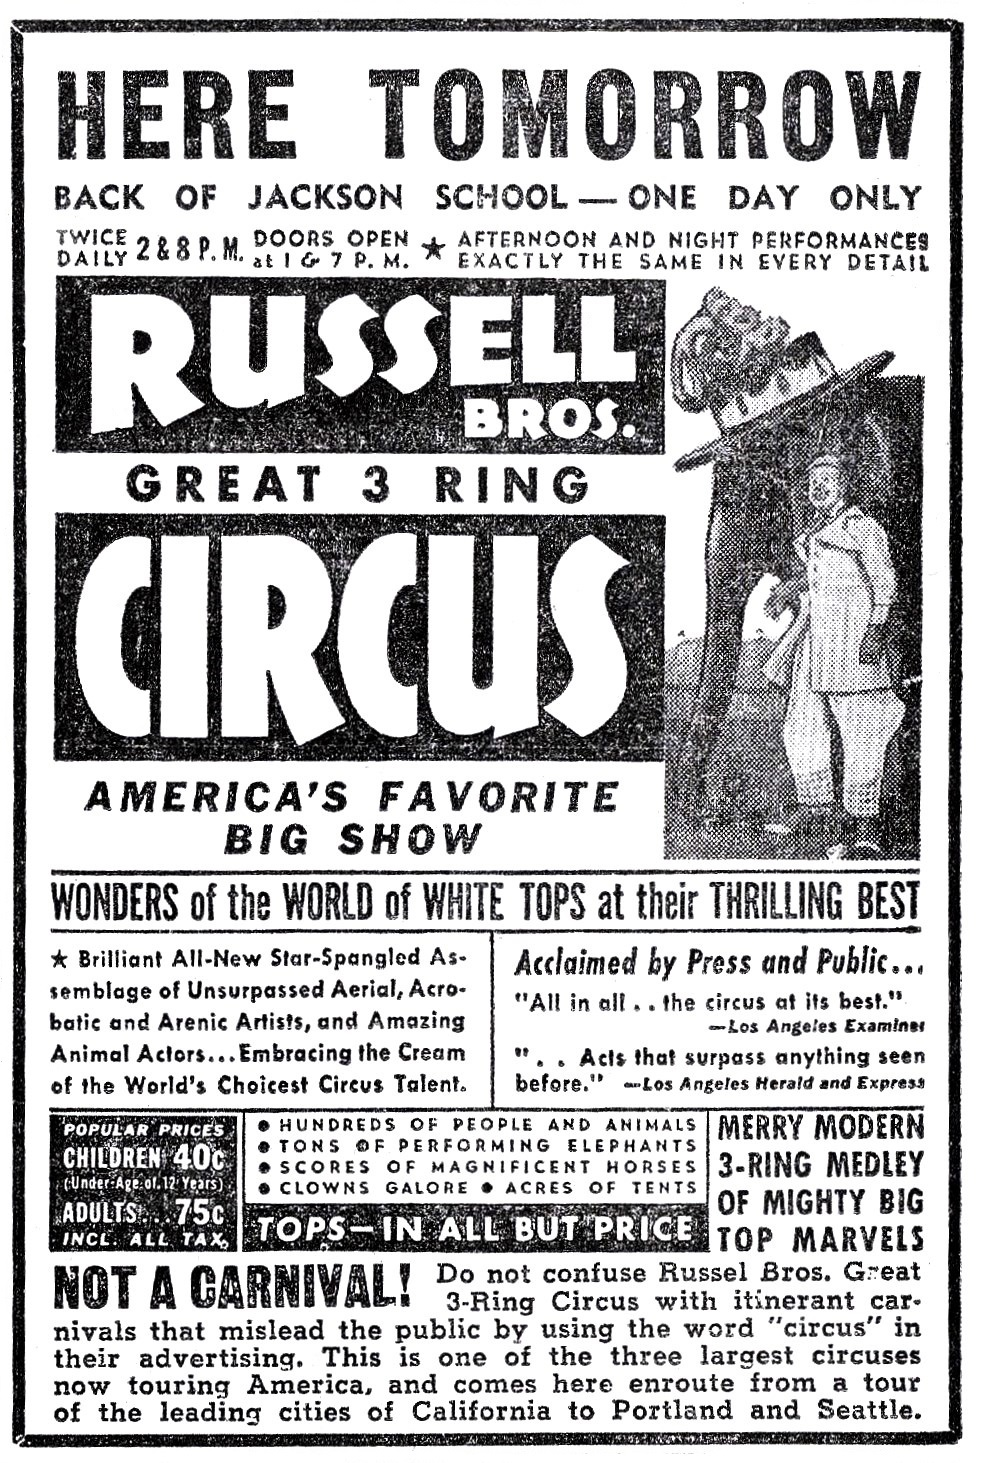 Russell Bros. Circus ad, June 23, 1942 Medford Mail Tribune